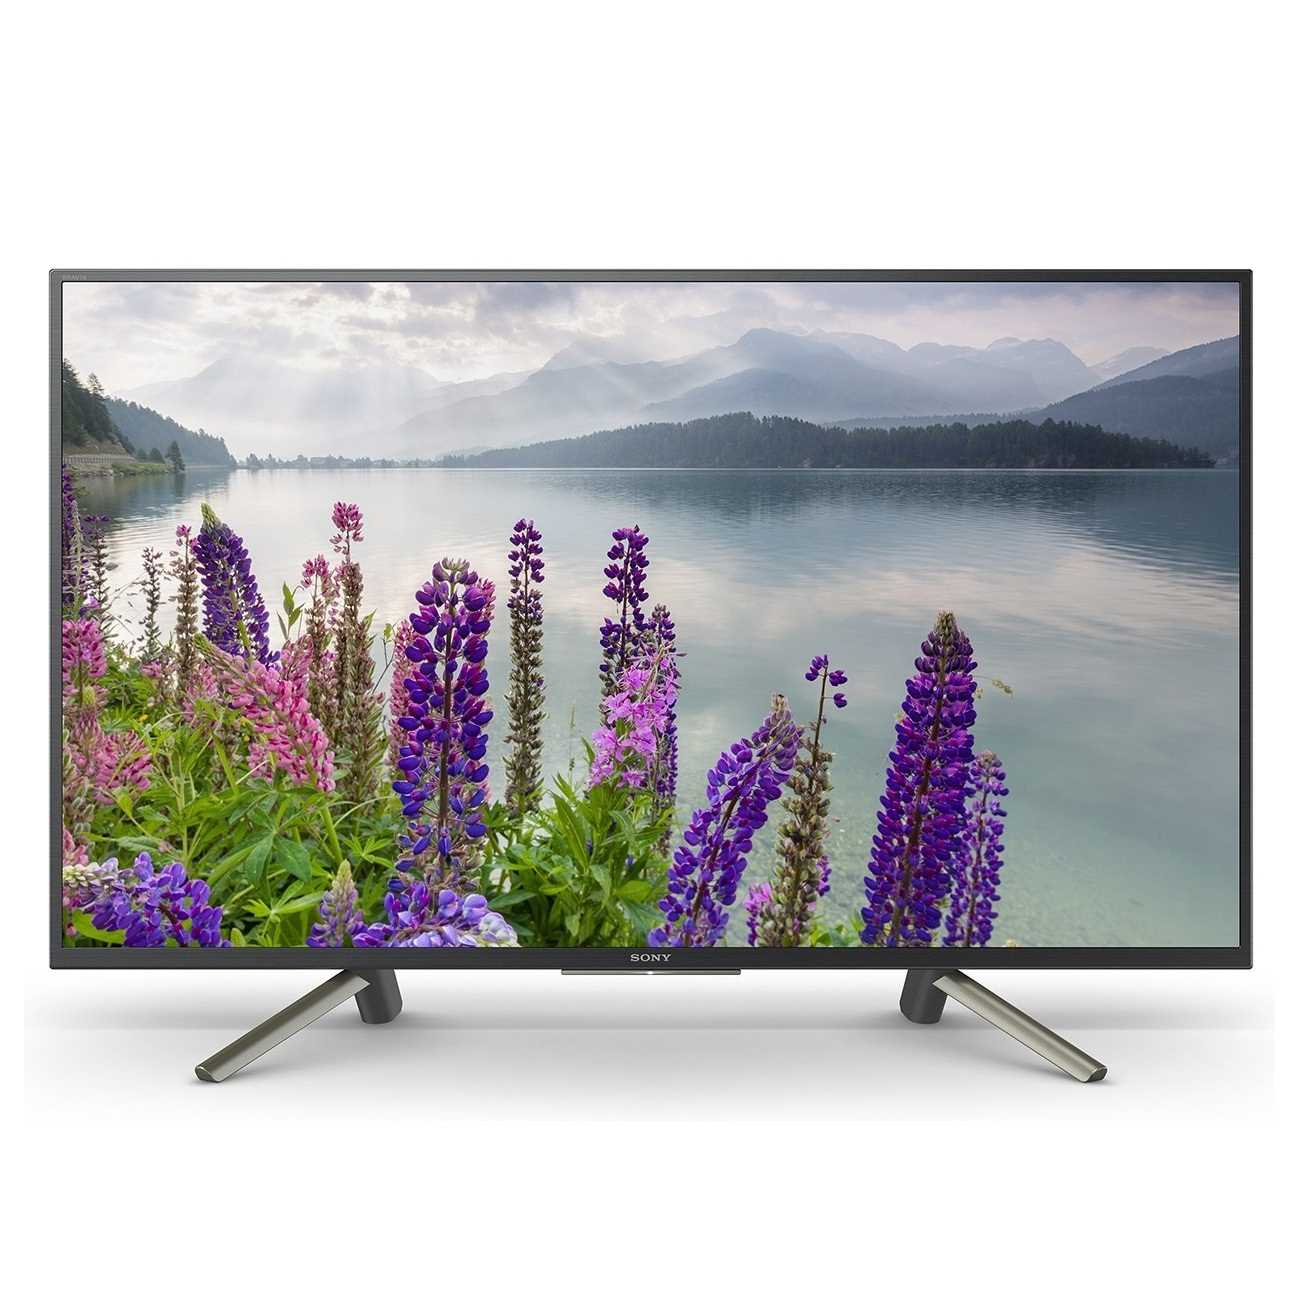 Sony Bravia KDL-49W800F 49 Inch Full HD Smart Android LED Television